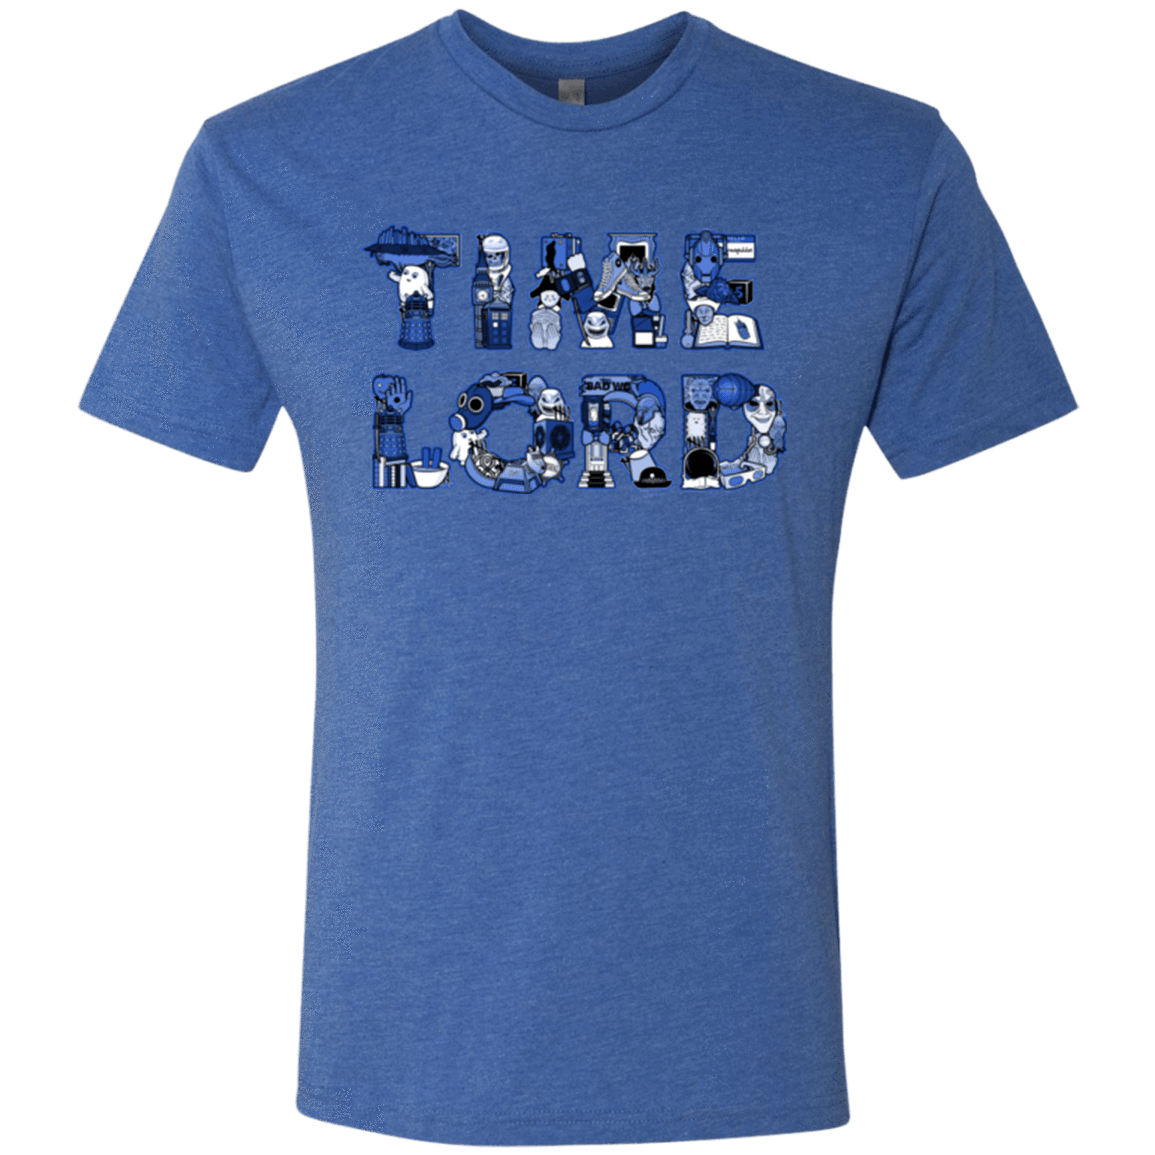 T-Shirts Vintage Royal / Small Timelord Men's Triblend T-Shirt